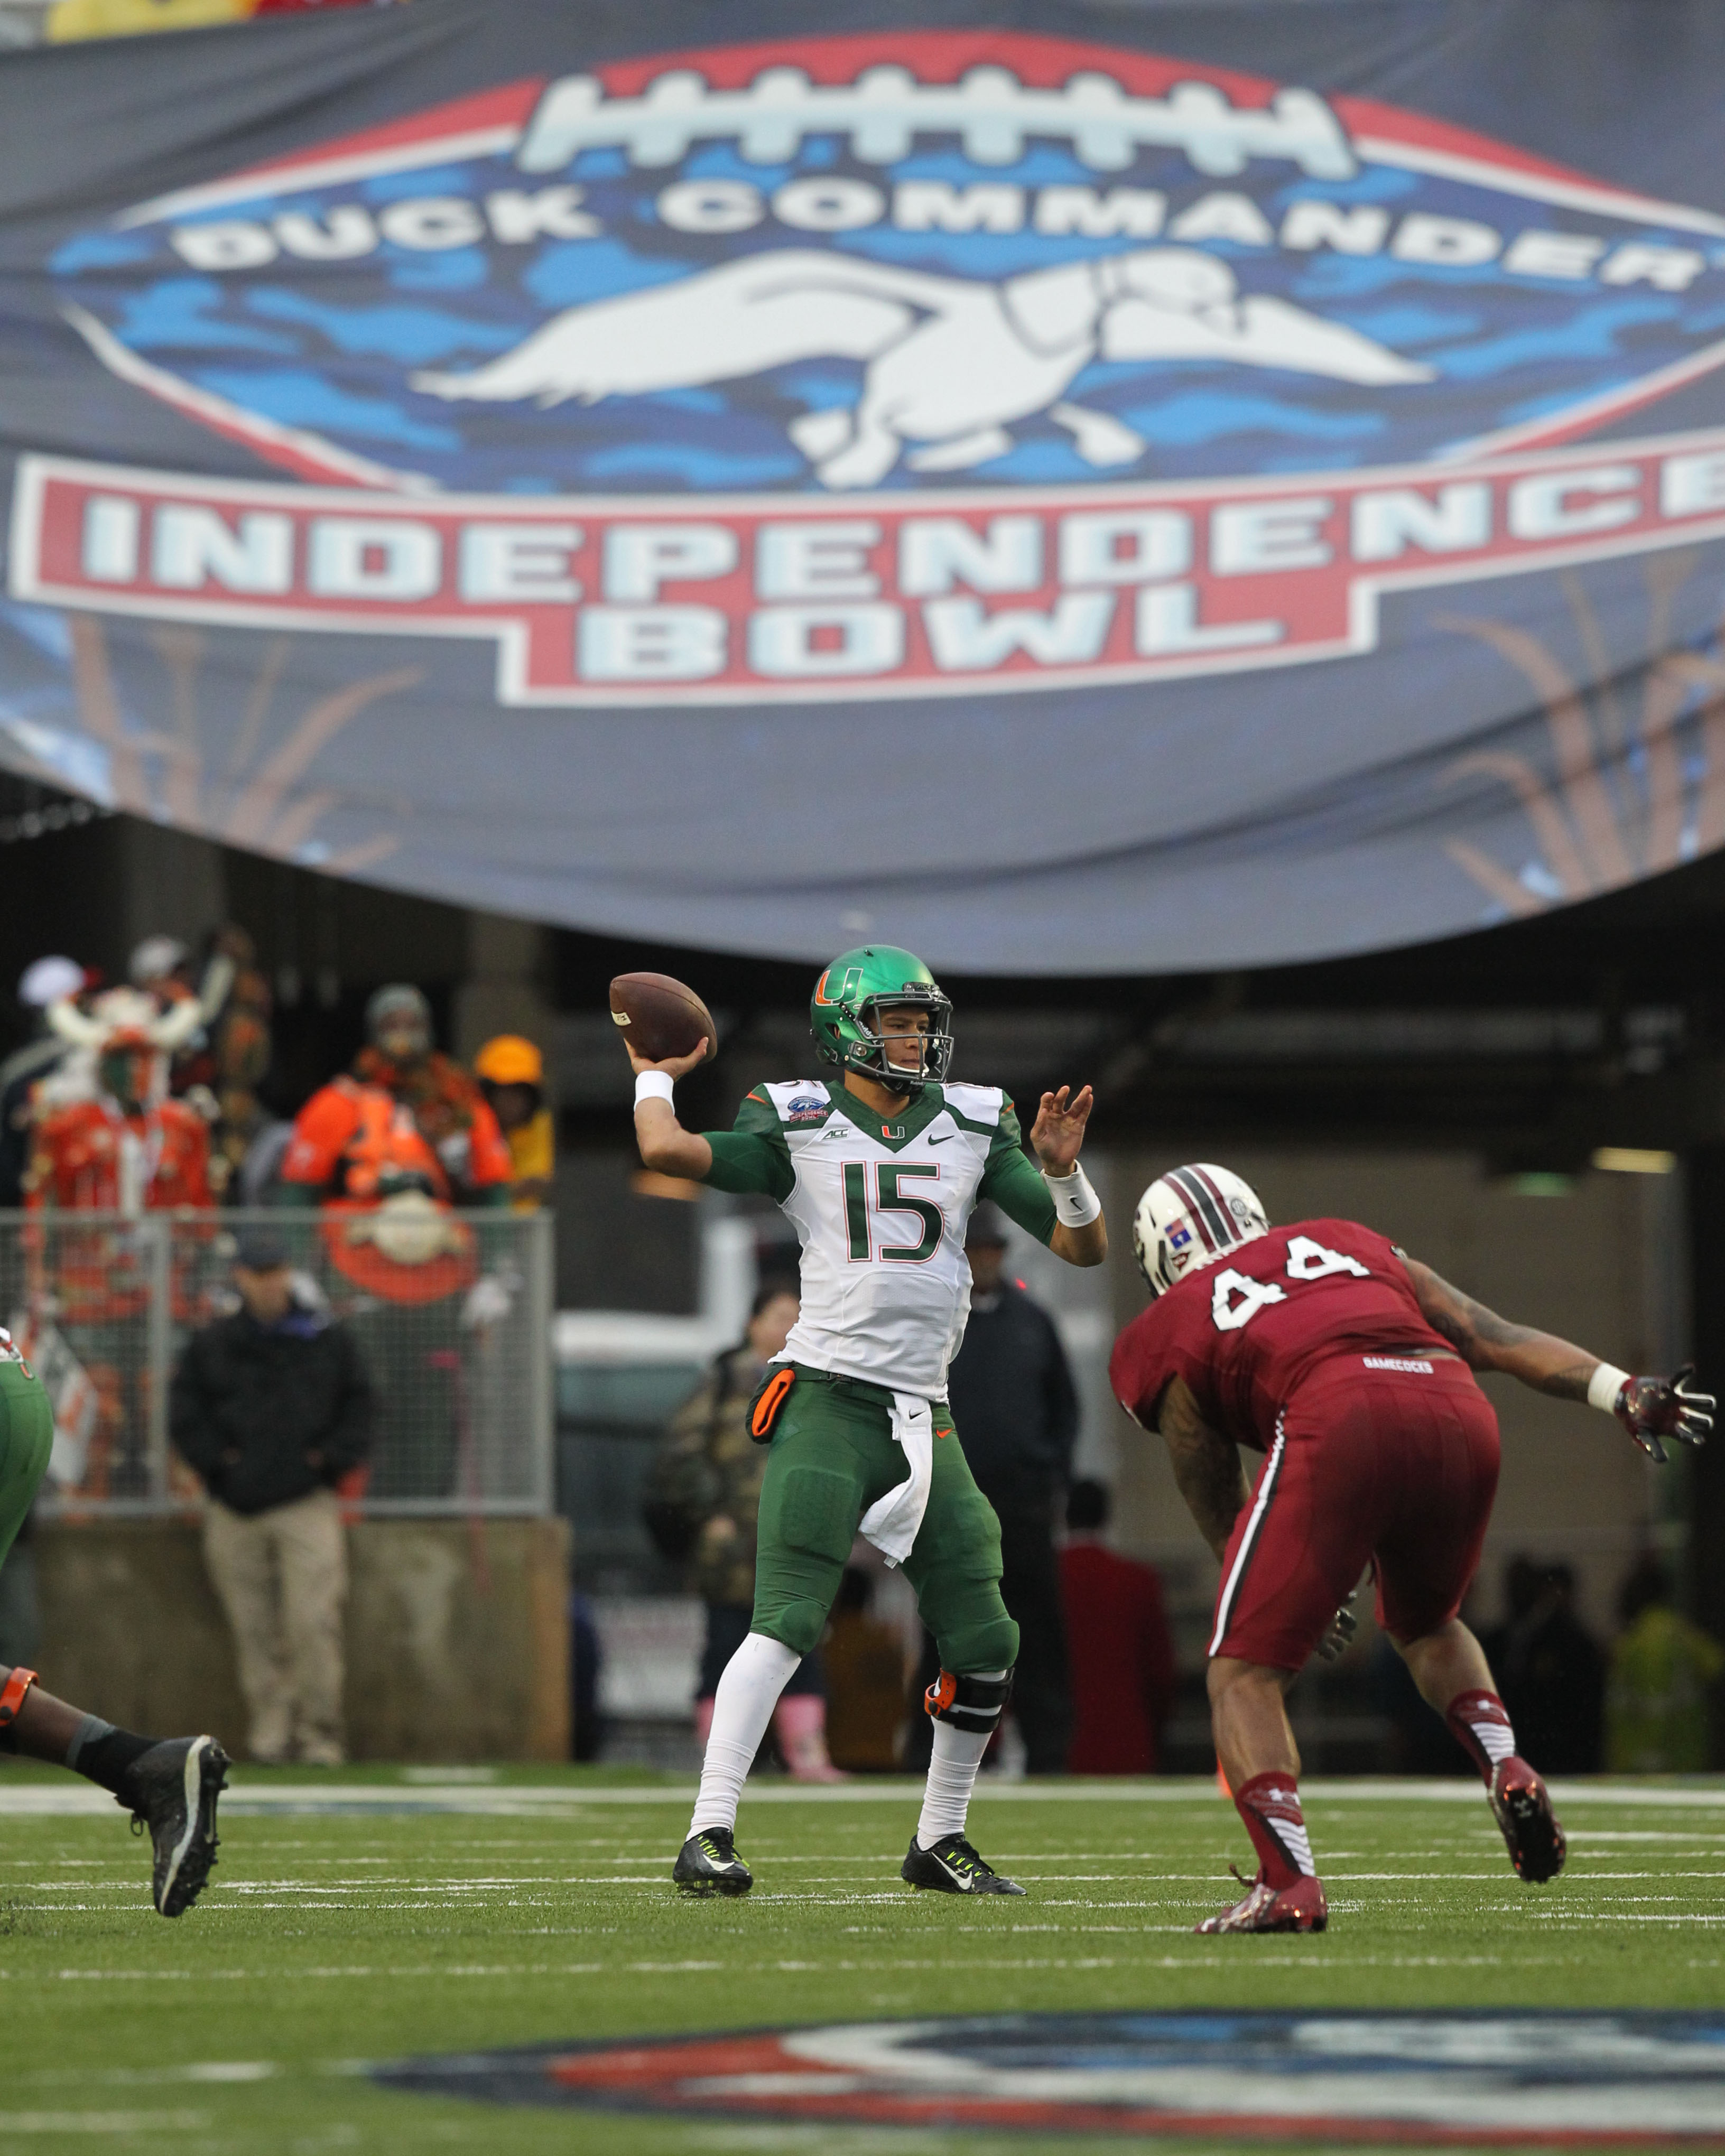 Dec 27, 2014; Shreveport, LA, USA; Miami Hurricanes quarterback Brad Kaaya (15) looks to pass as South Carolina Gamecocks defensive end Gerald Dixon (44) pressures during the first half in the 2014 Independence Bowl at Independence Stadium. (Nelson Chenault-USA TODAY Sports)